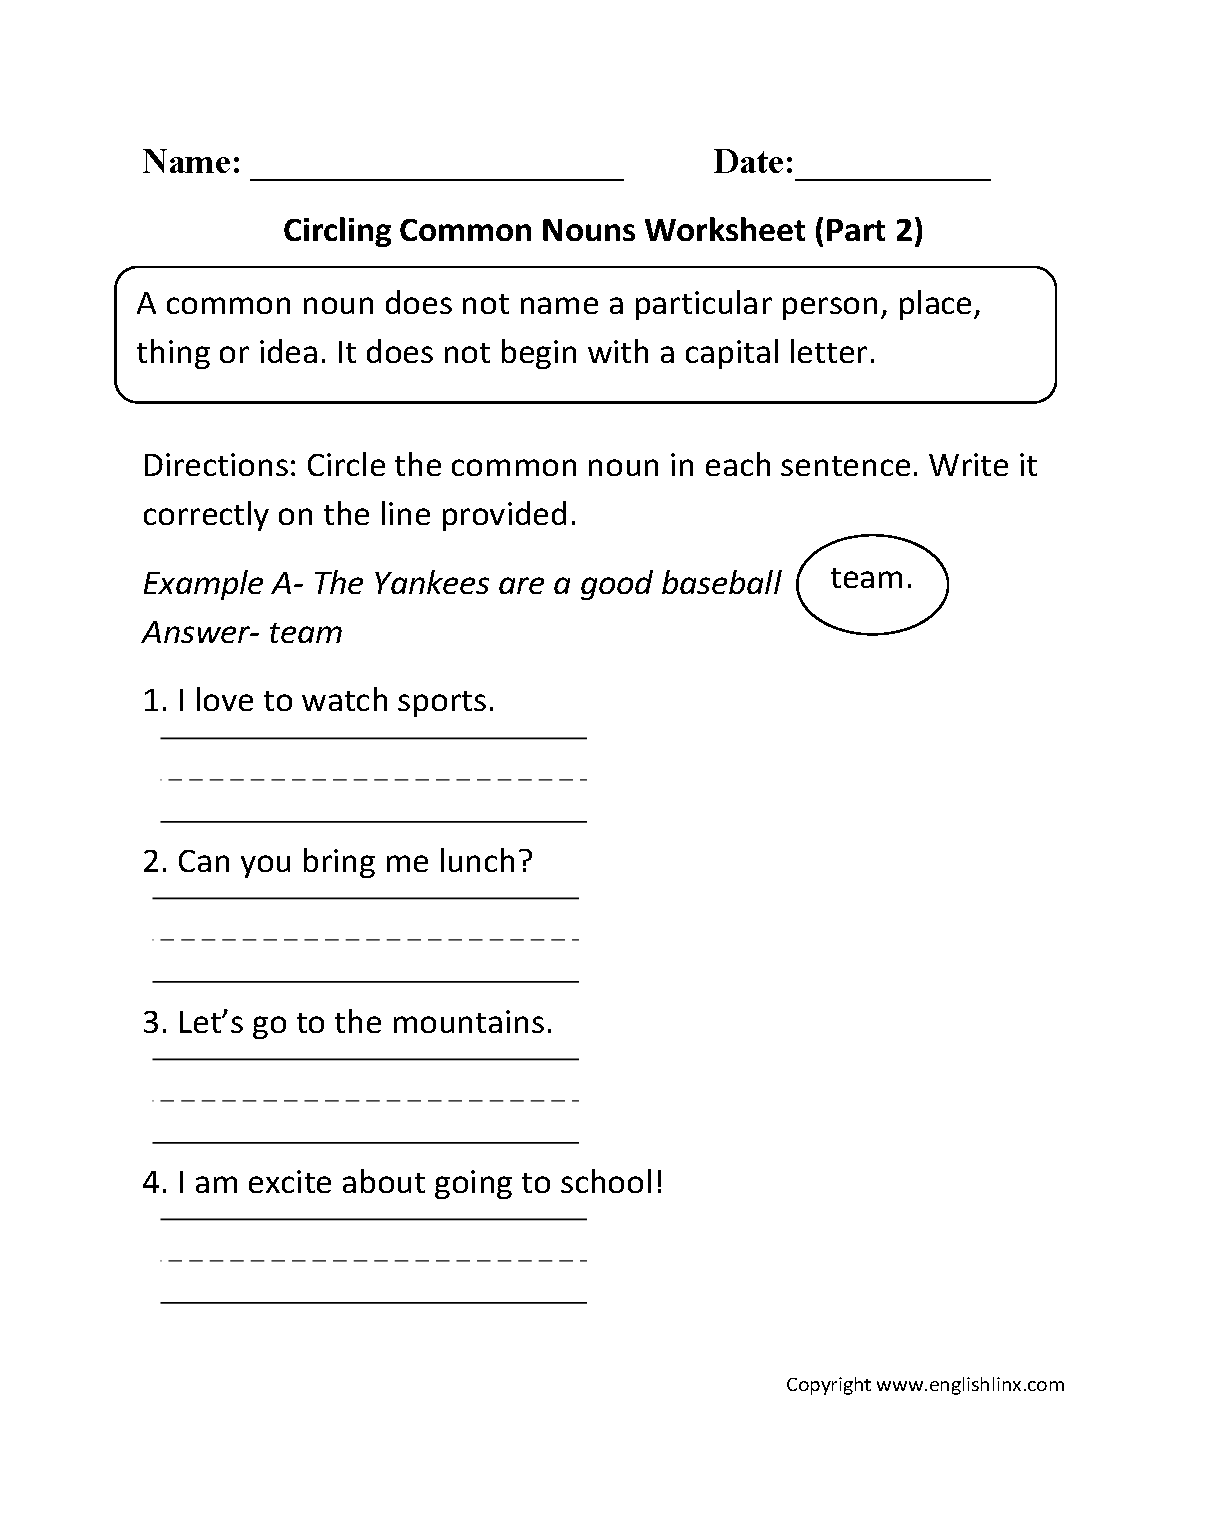 medium resolution of Pin by Mais Samhouri on Homeschoolin' English   Common nouns worksheet